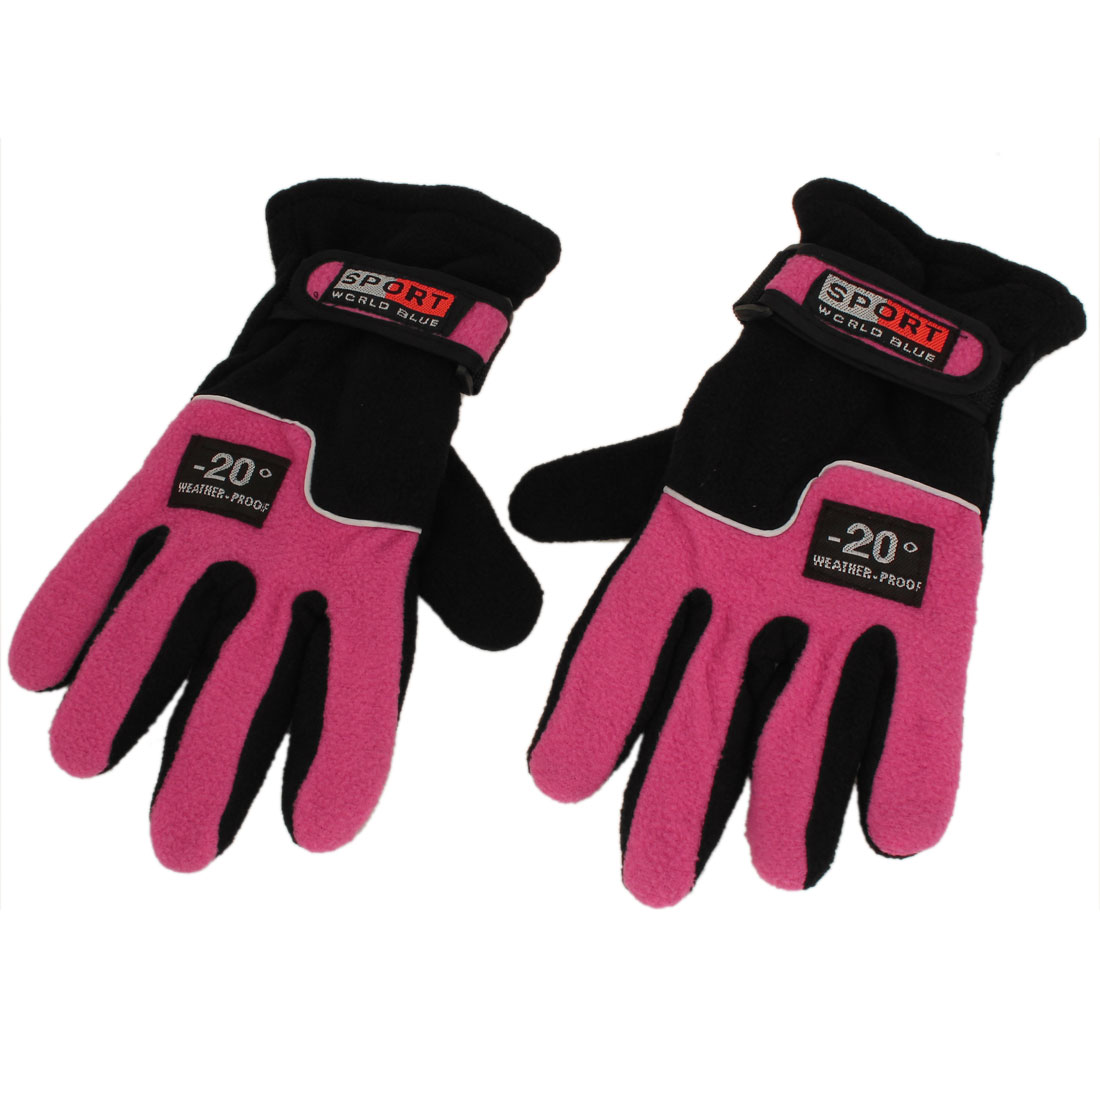 Pair Outdoor Cycling Snowboard Ski Fleece Thermal Winter Gloves Pink for Unisex